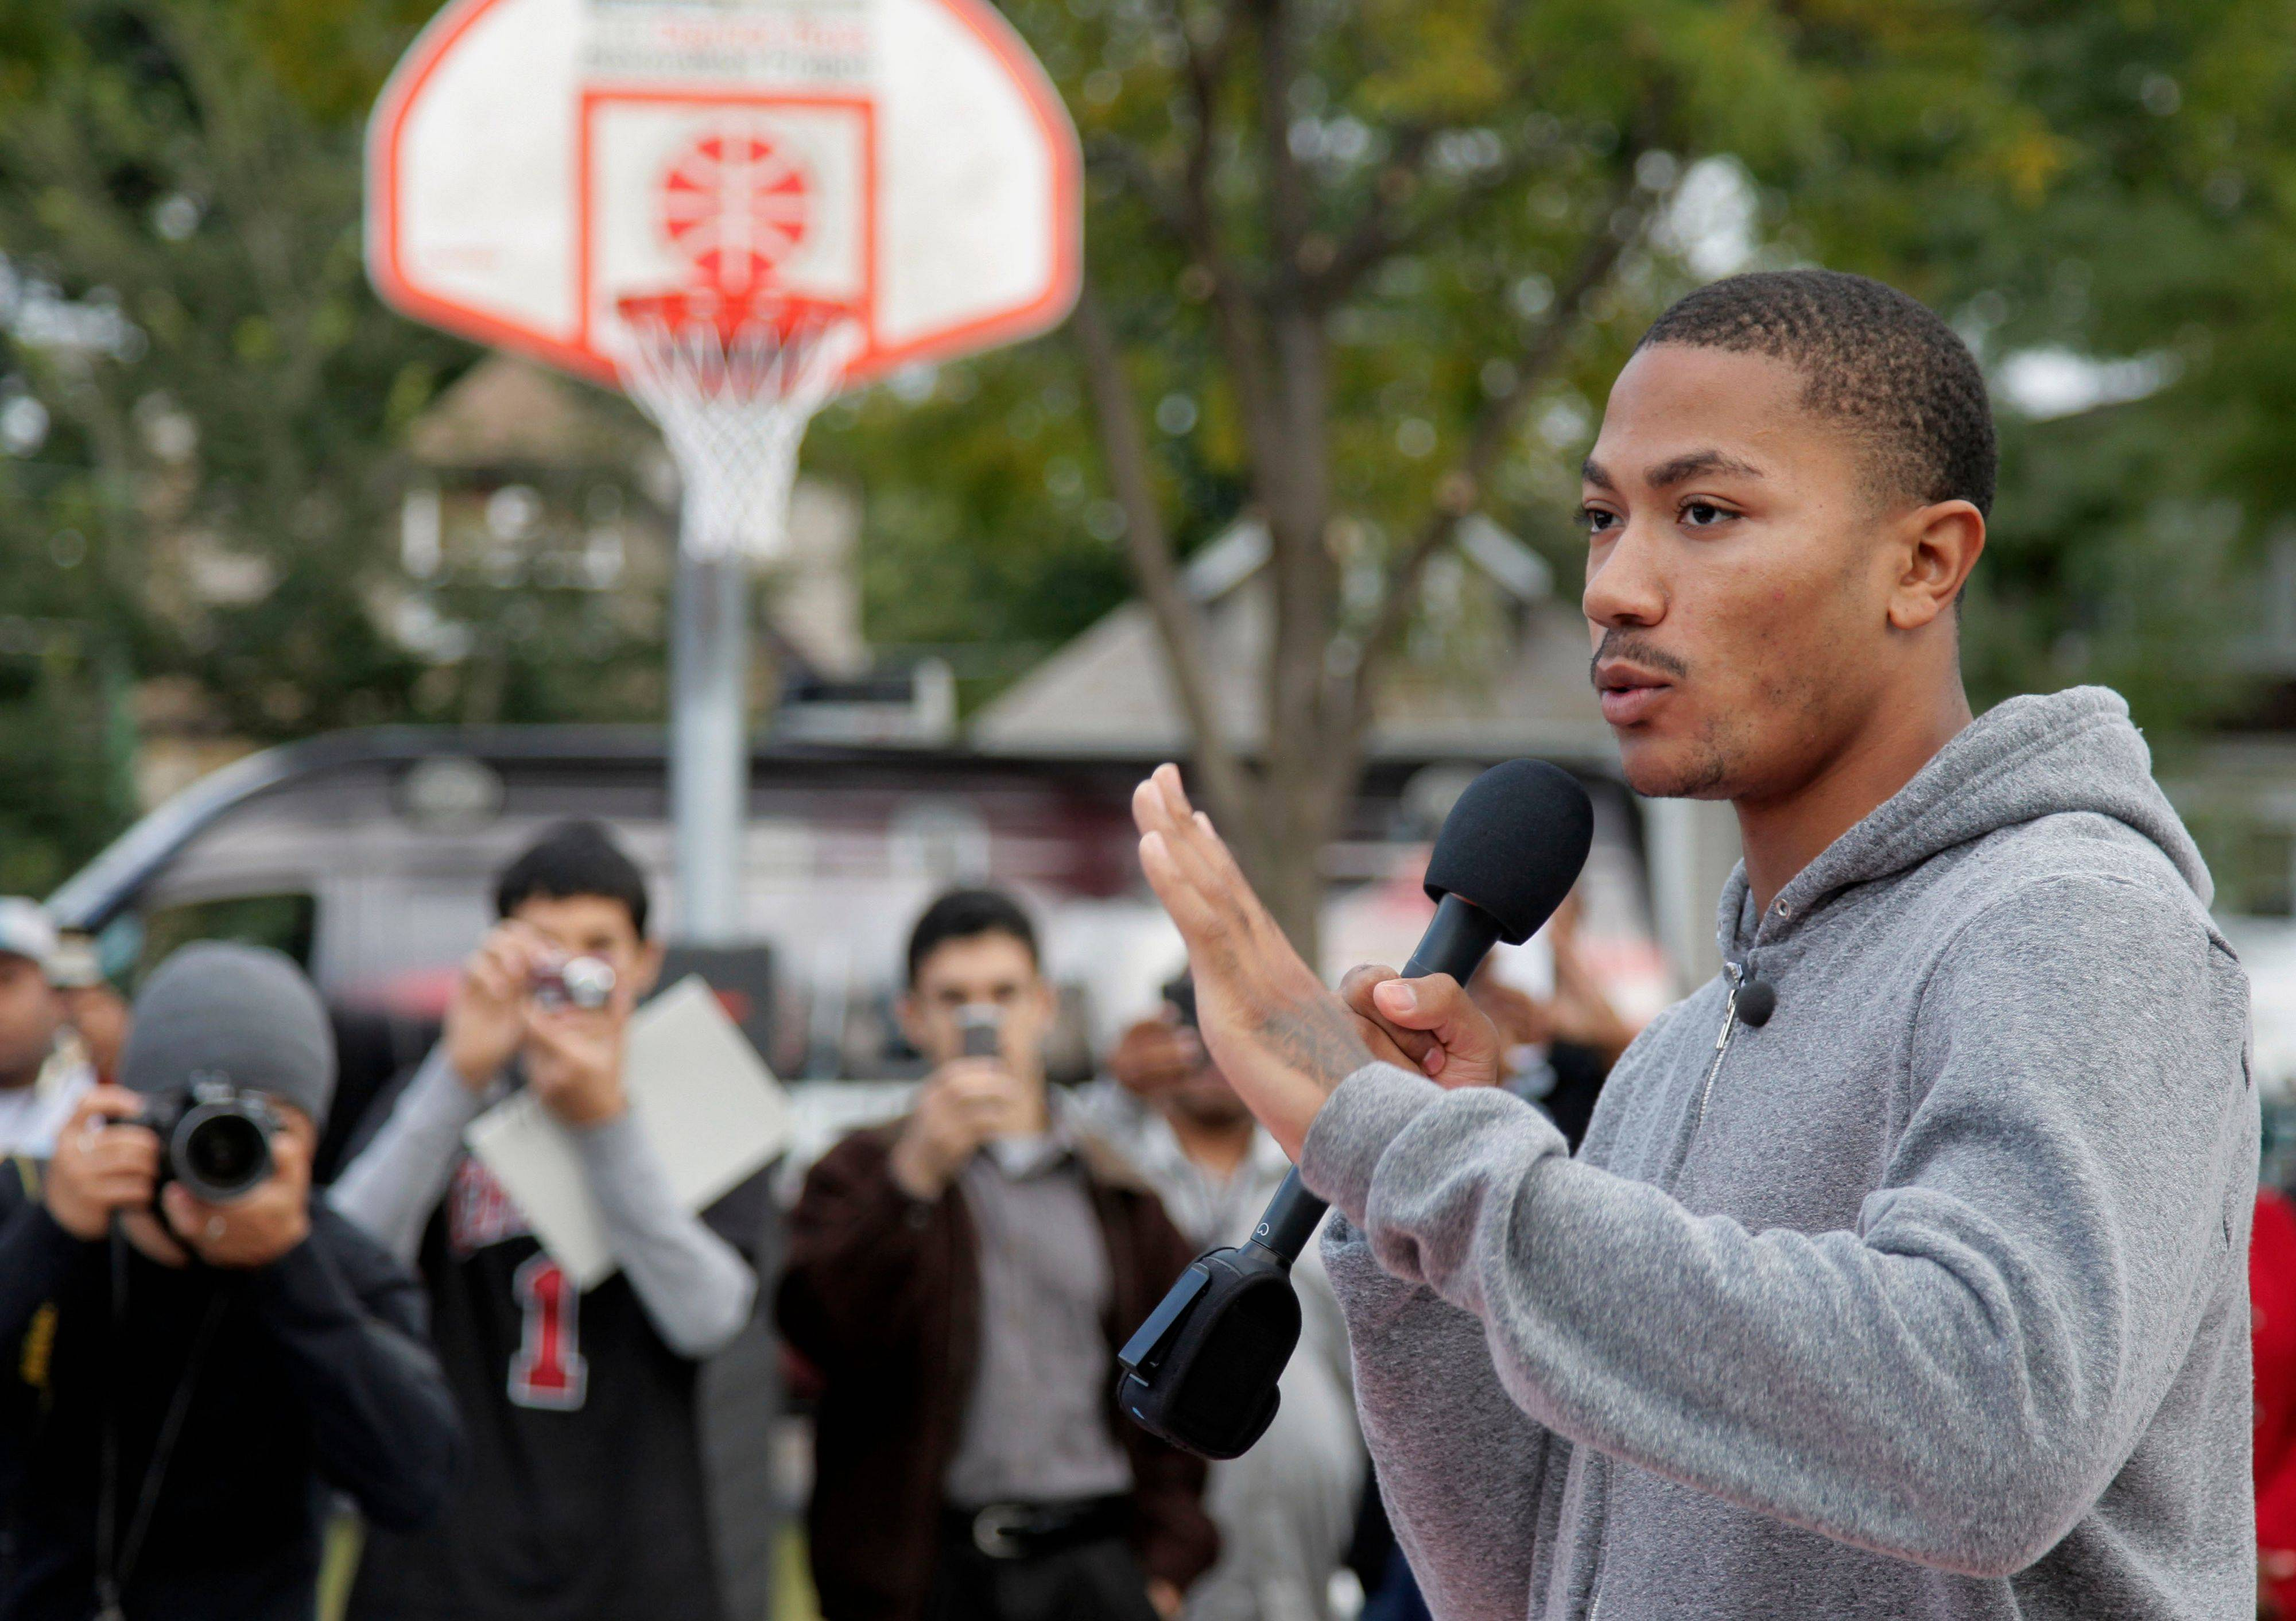 The Bulls' Derrick Rose talks Tuesday as he participates with dozens of elementary school students from his alma mater, Randolph Elementary School on Chicago's South Side.